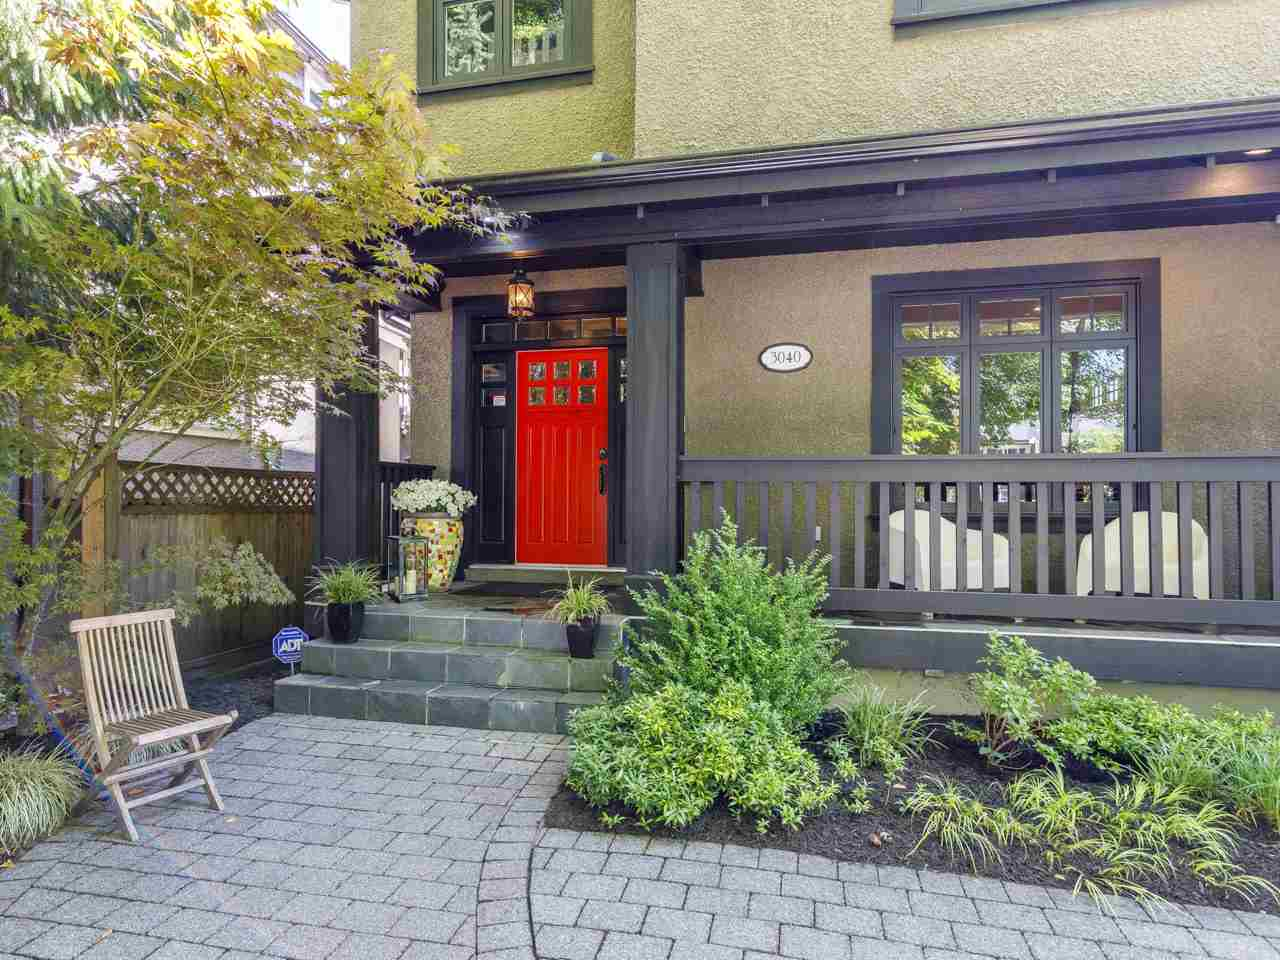 3040 W 12 AVENUE - Kitsilano House/Single Family for sale, 5 Bedrooms (R2482160) - #3